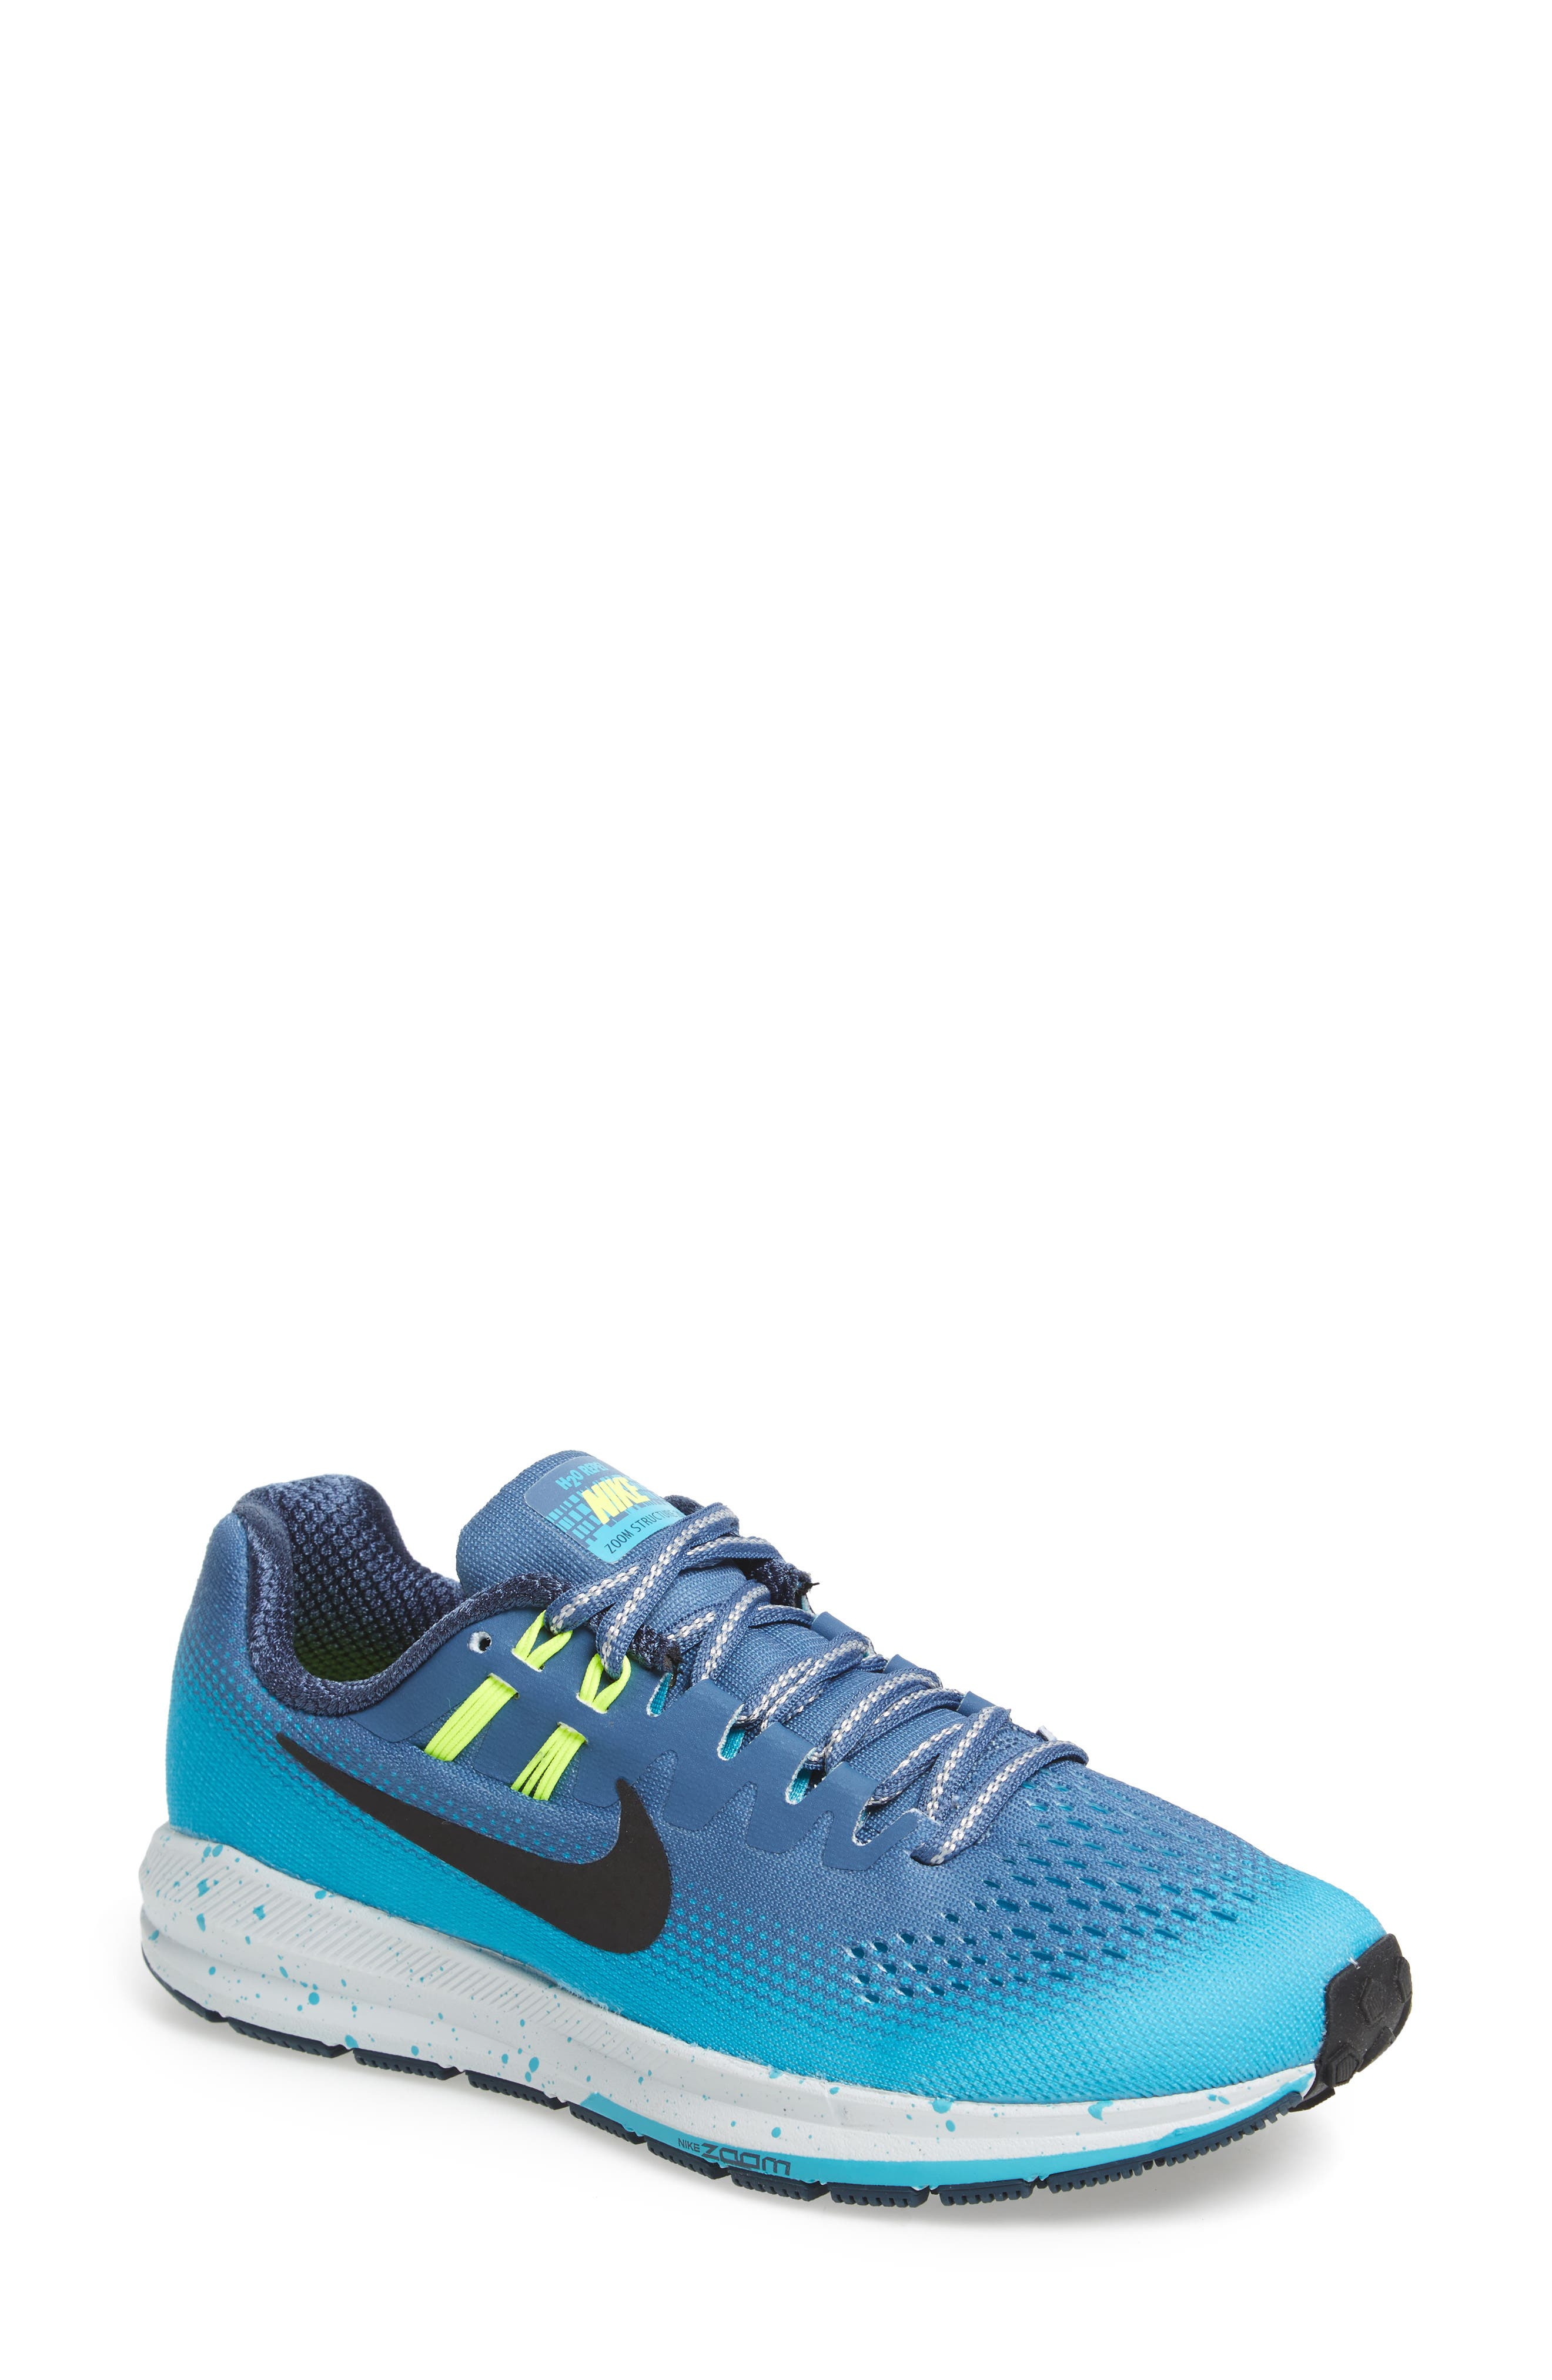 Main Image - Nike Air Zoom Structure 20 Running Shoe (Women)